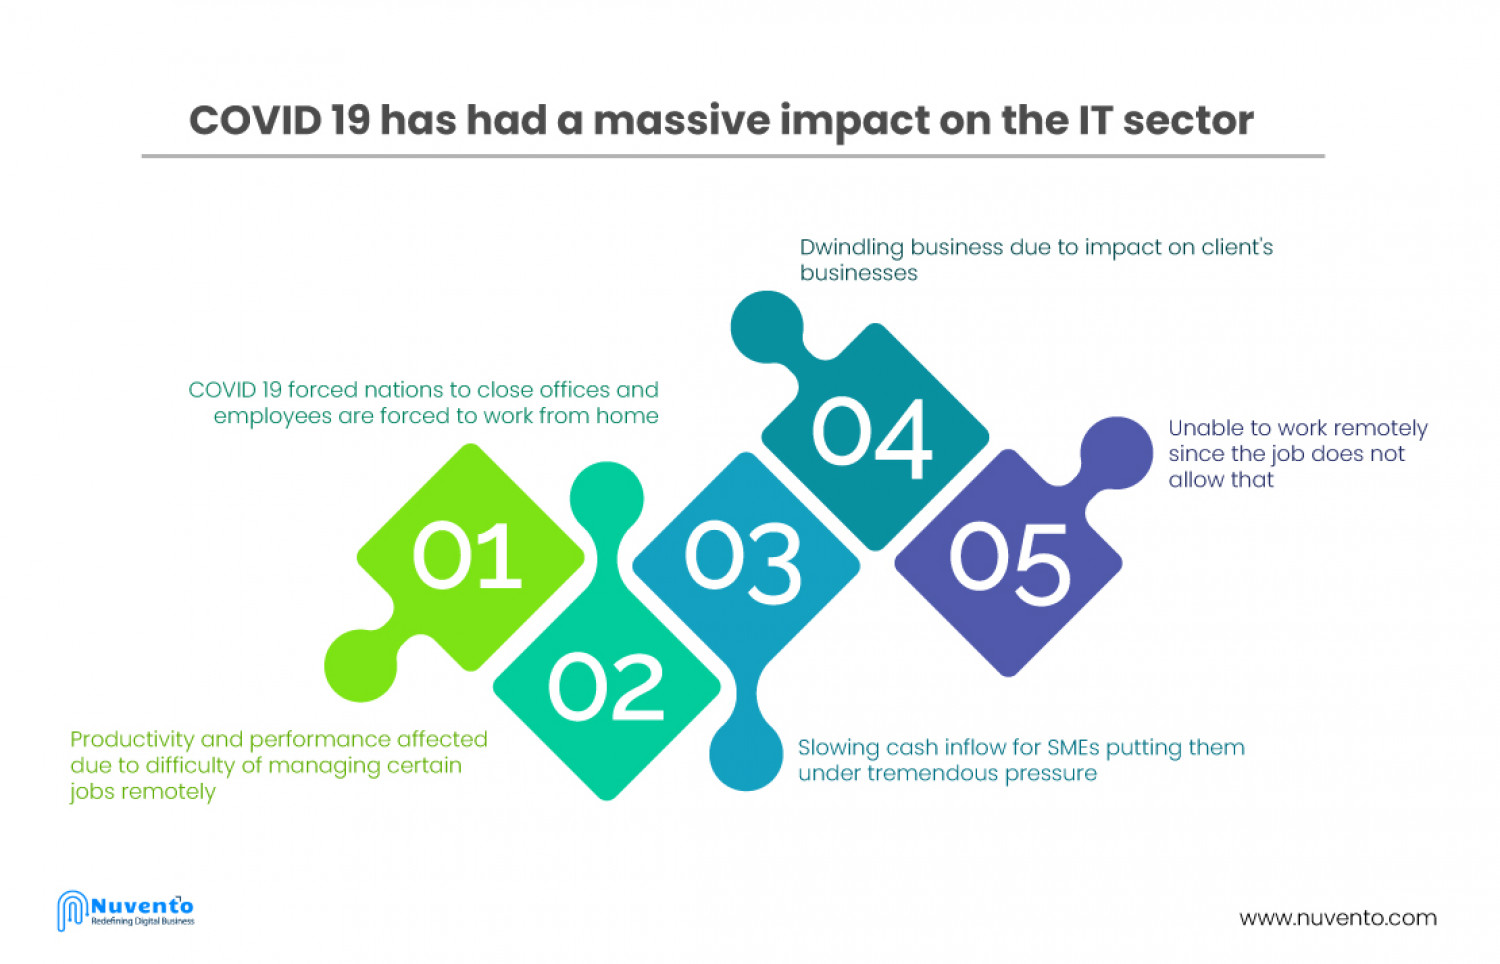 COVID-19 impact on software development: dedicated teams and productivity Infographic